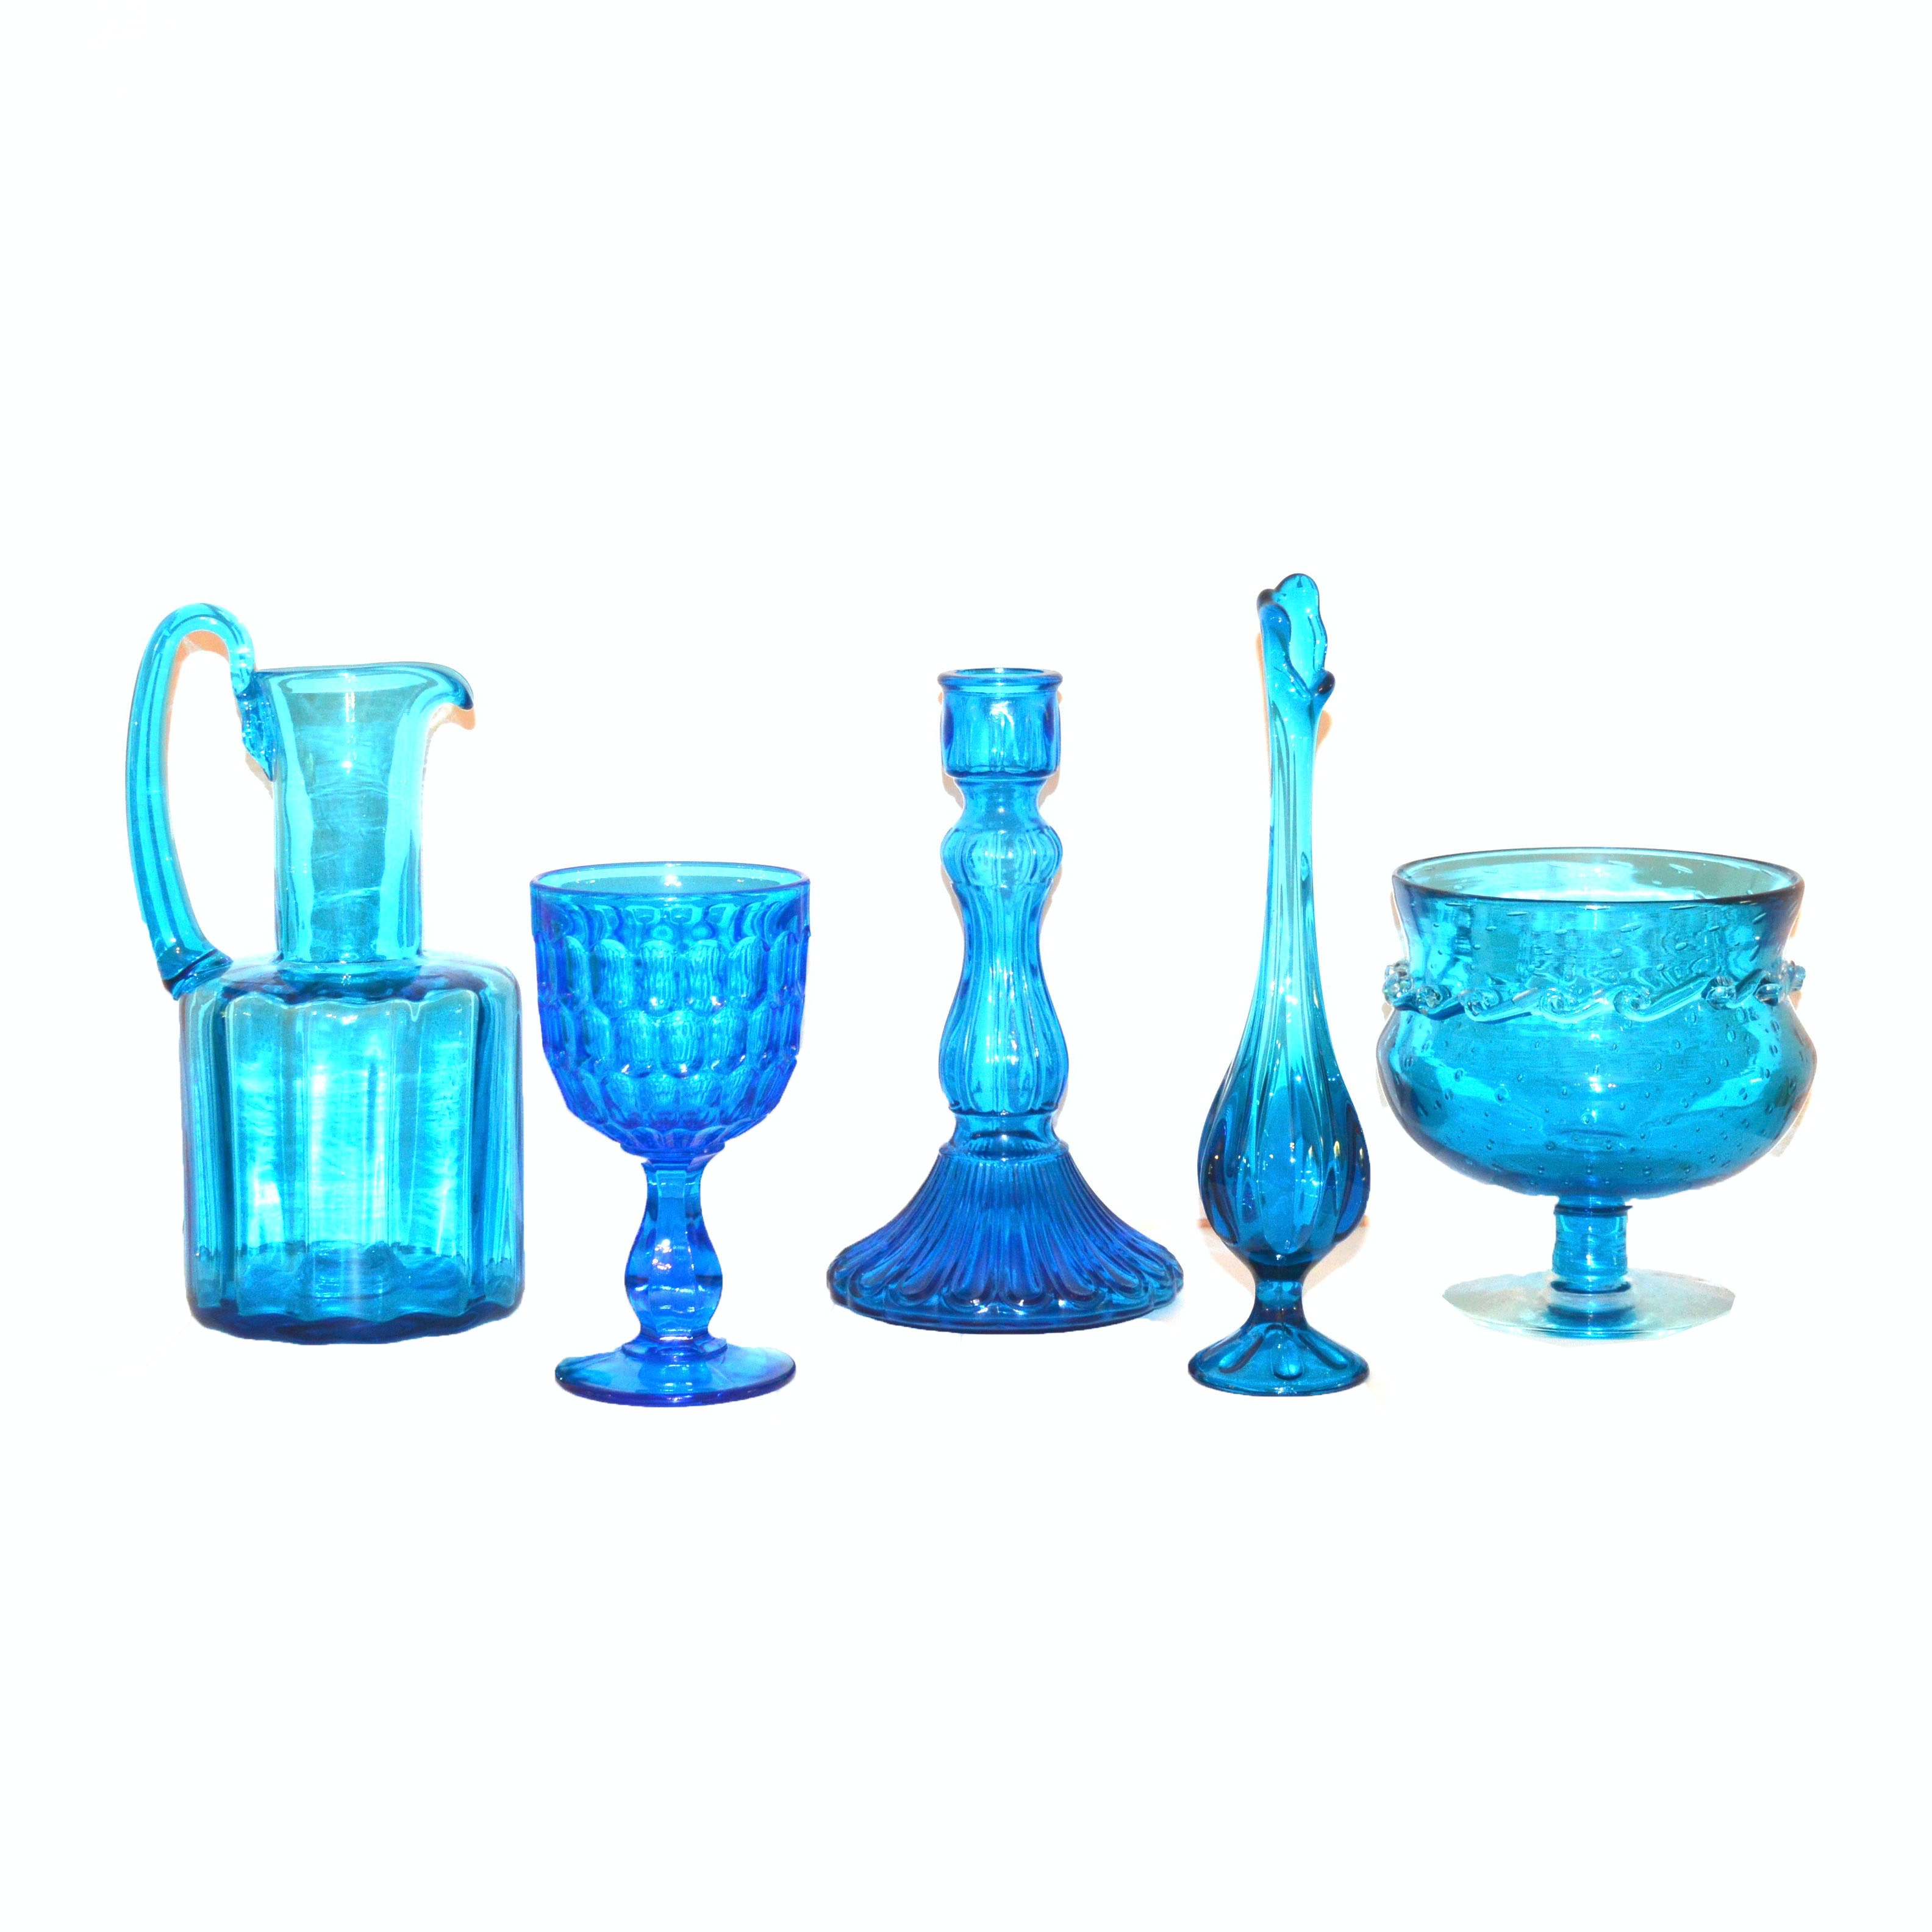 Blue Glassware and Hand-Blown Dishes